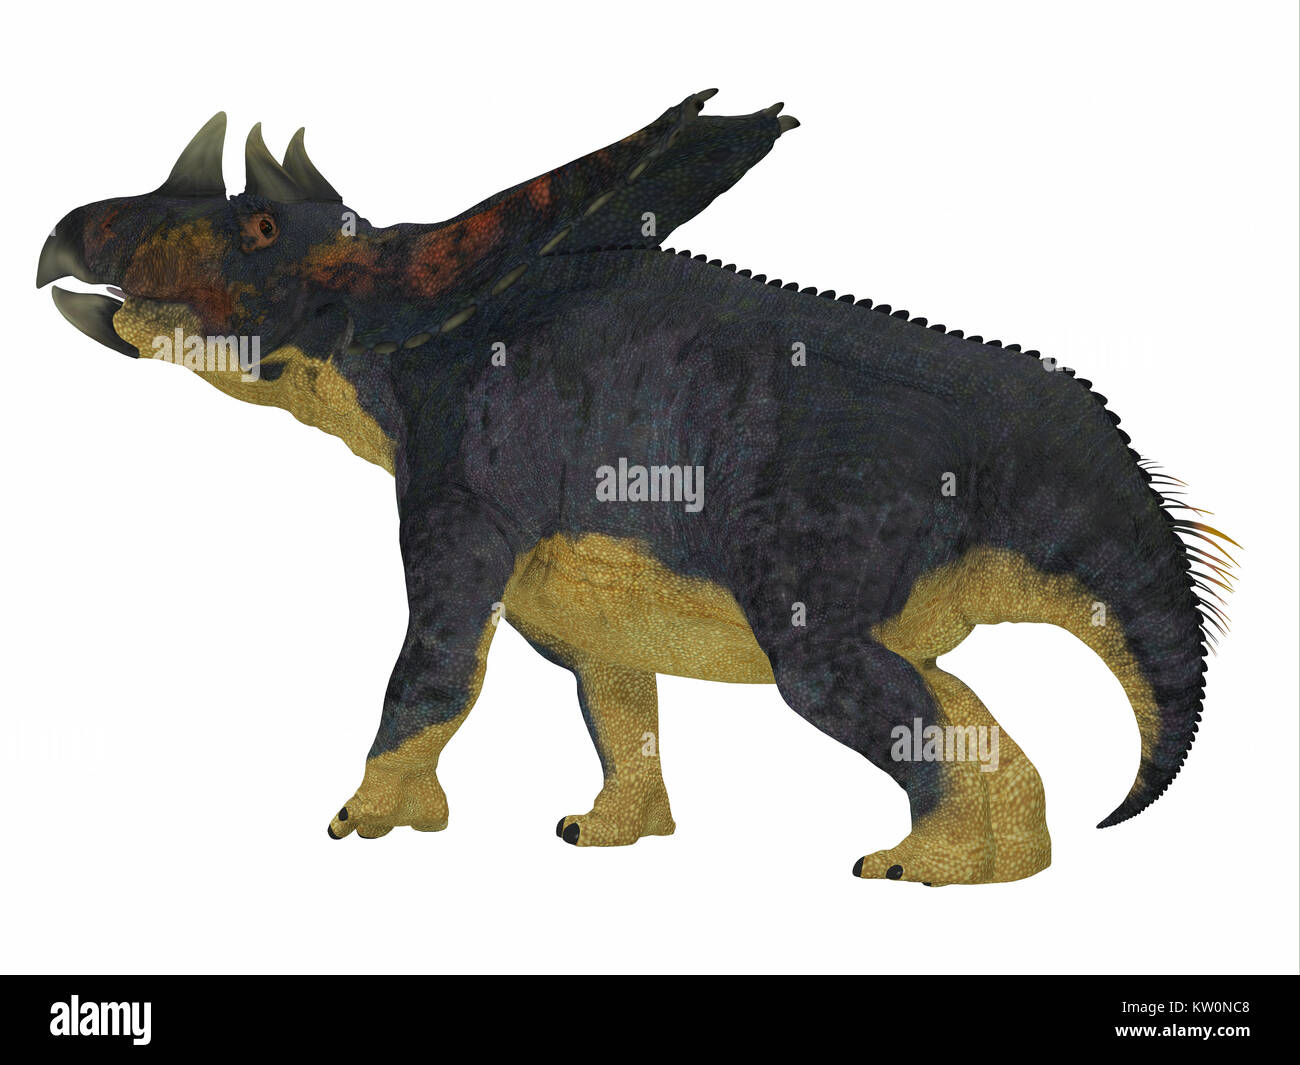 Chasmosaurus Dinosaur Tail - Chasmosaurus was a herbivorous ceratopsian dinosaur that lived in Alberta, Canada during - Stock Image